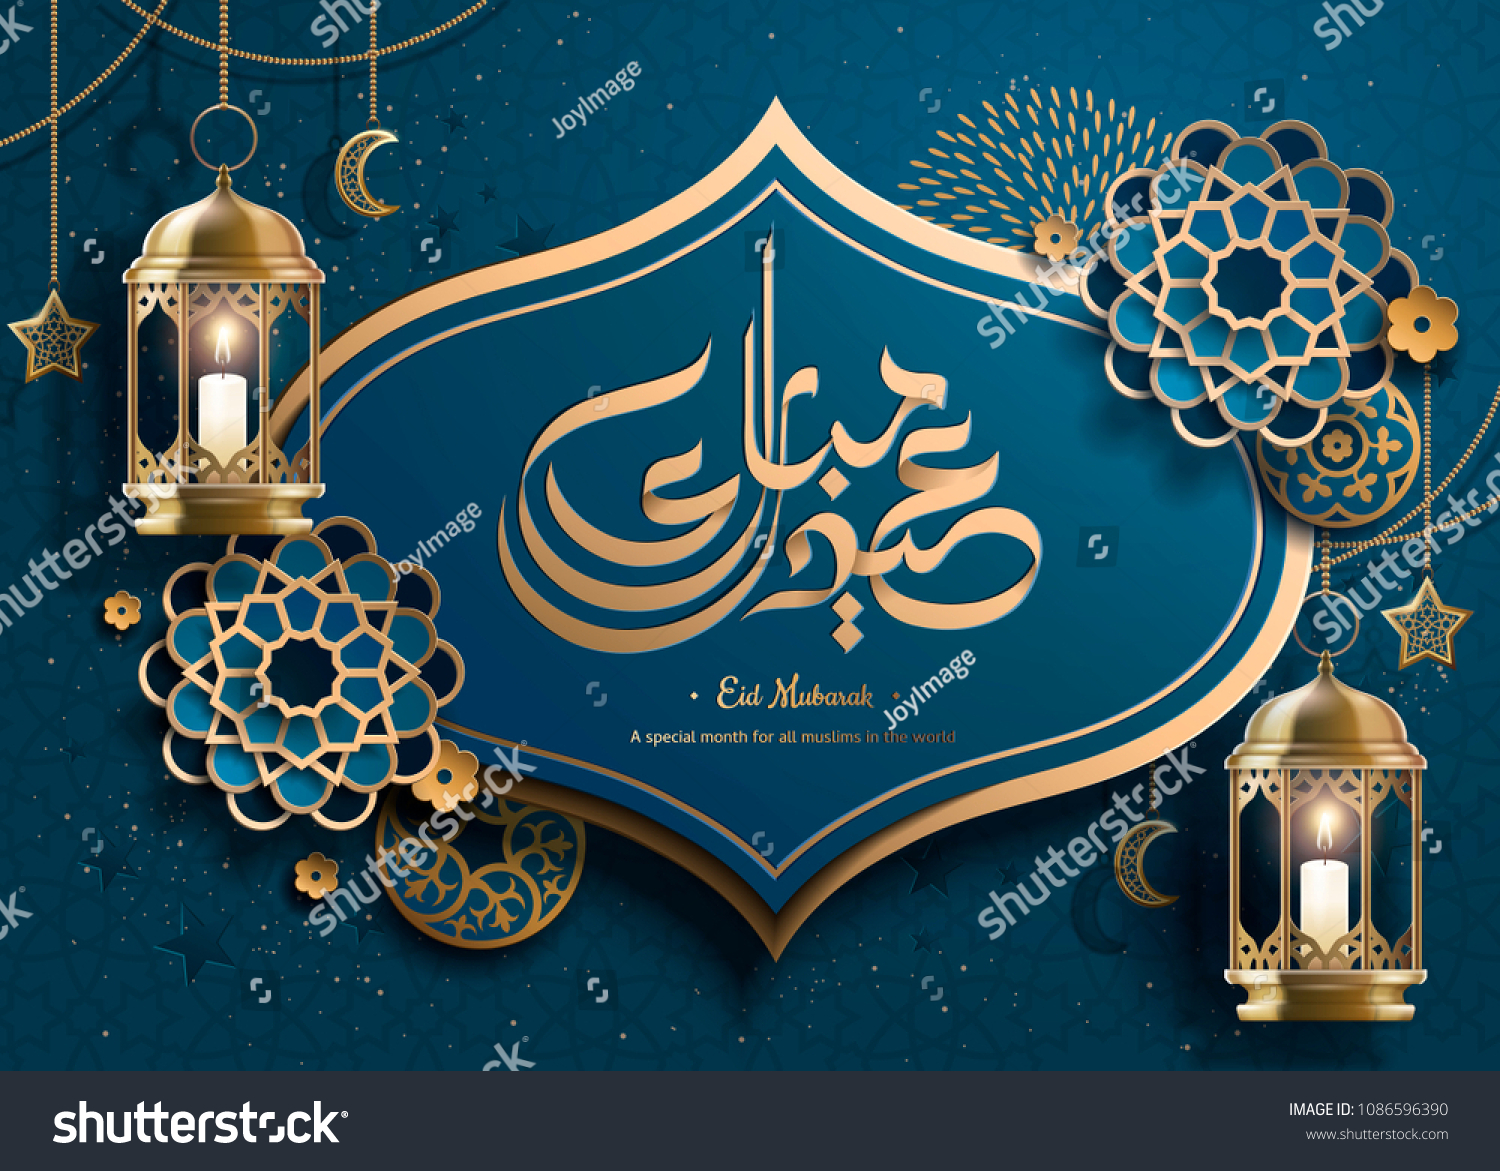 Eid Mubarak calligraphy with lanterns and floral designs in paper art style #1086596390